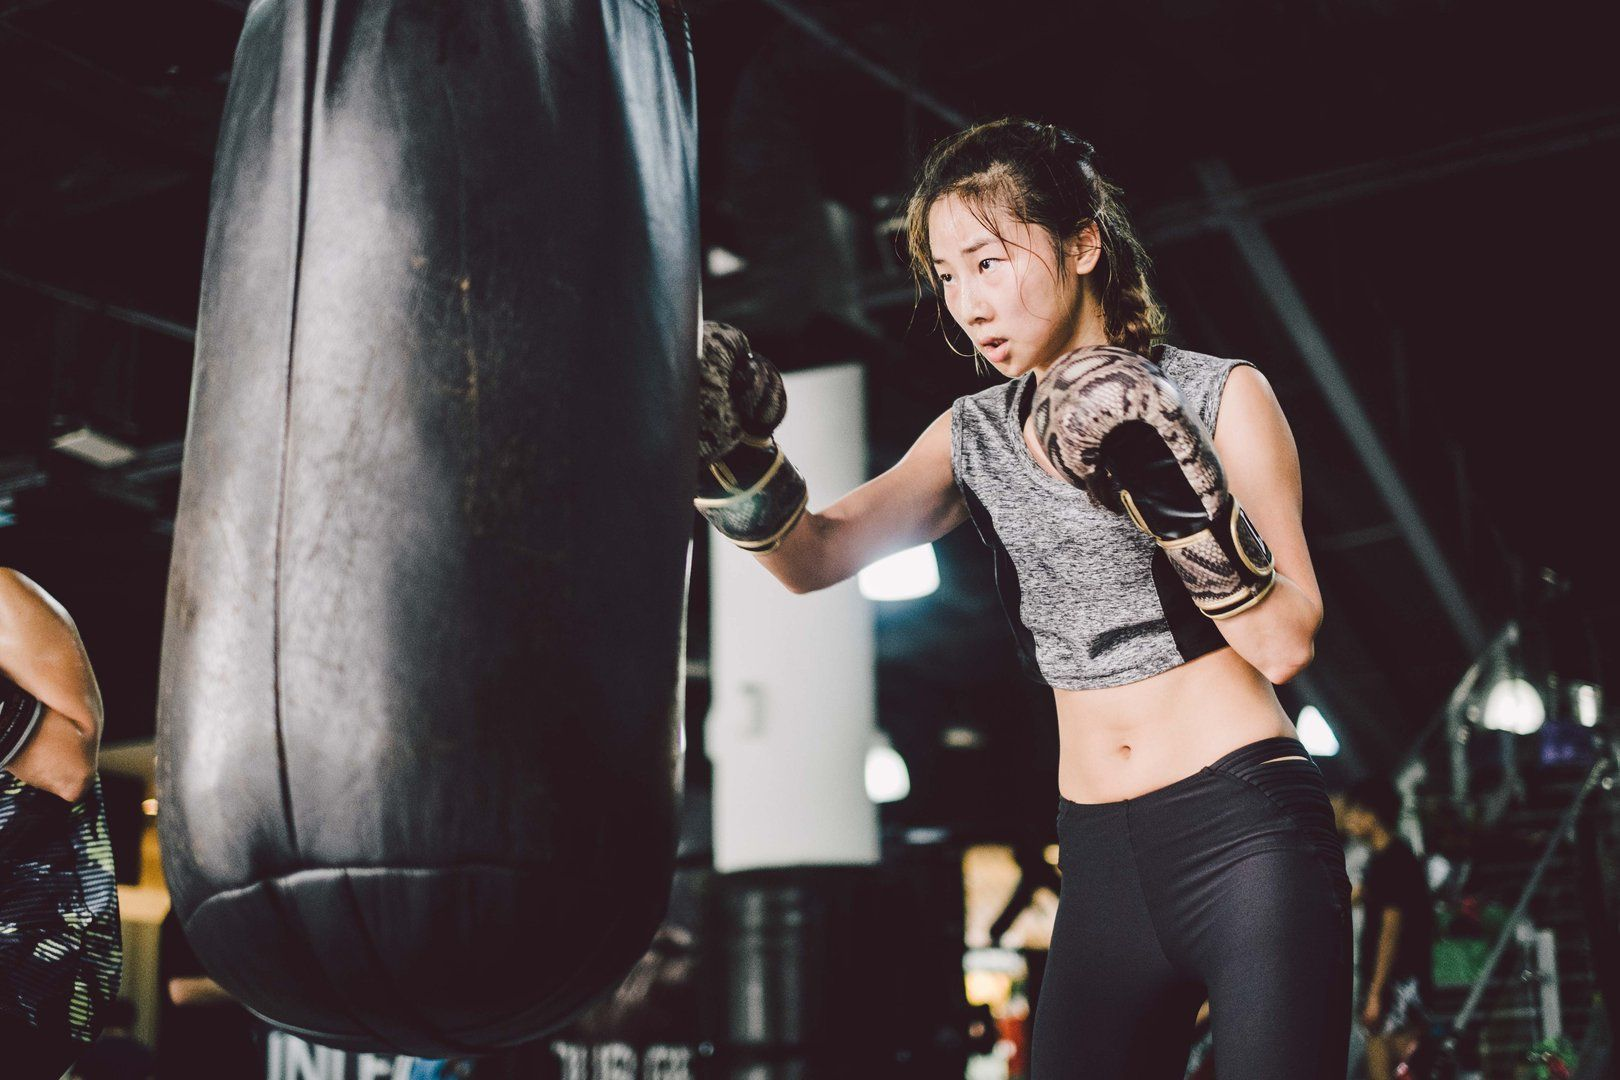 Training with a heavy bag develops efficient power.